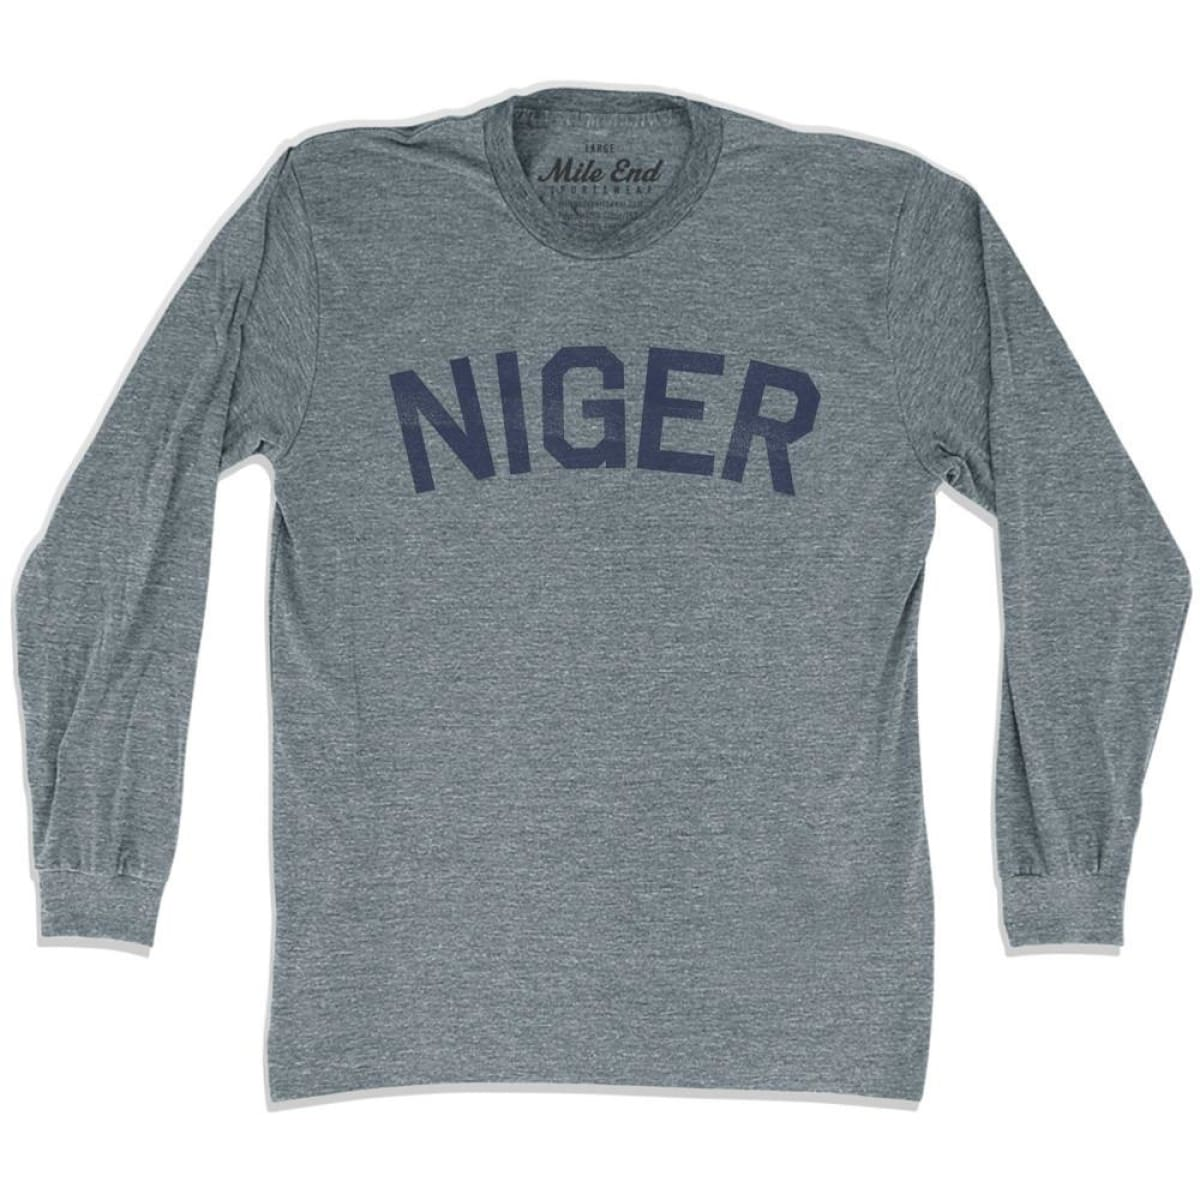 Niger City Vintage Long Sleeve T-shirt - Athletic Grey / Adult X-Small - Mile End City